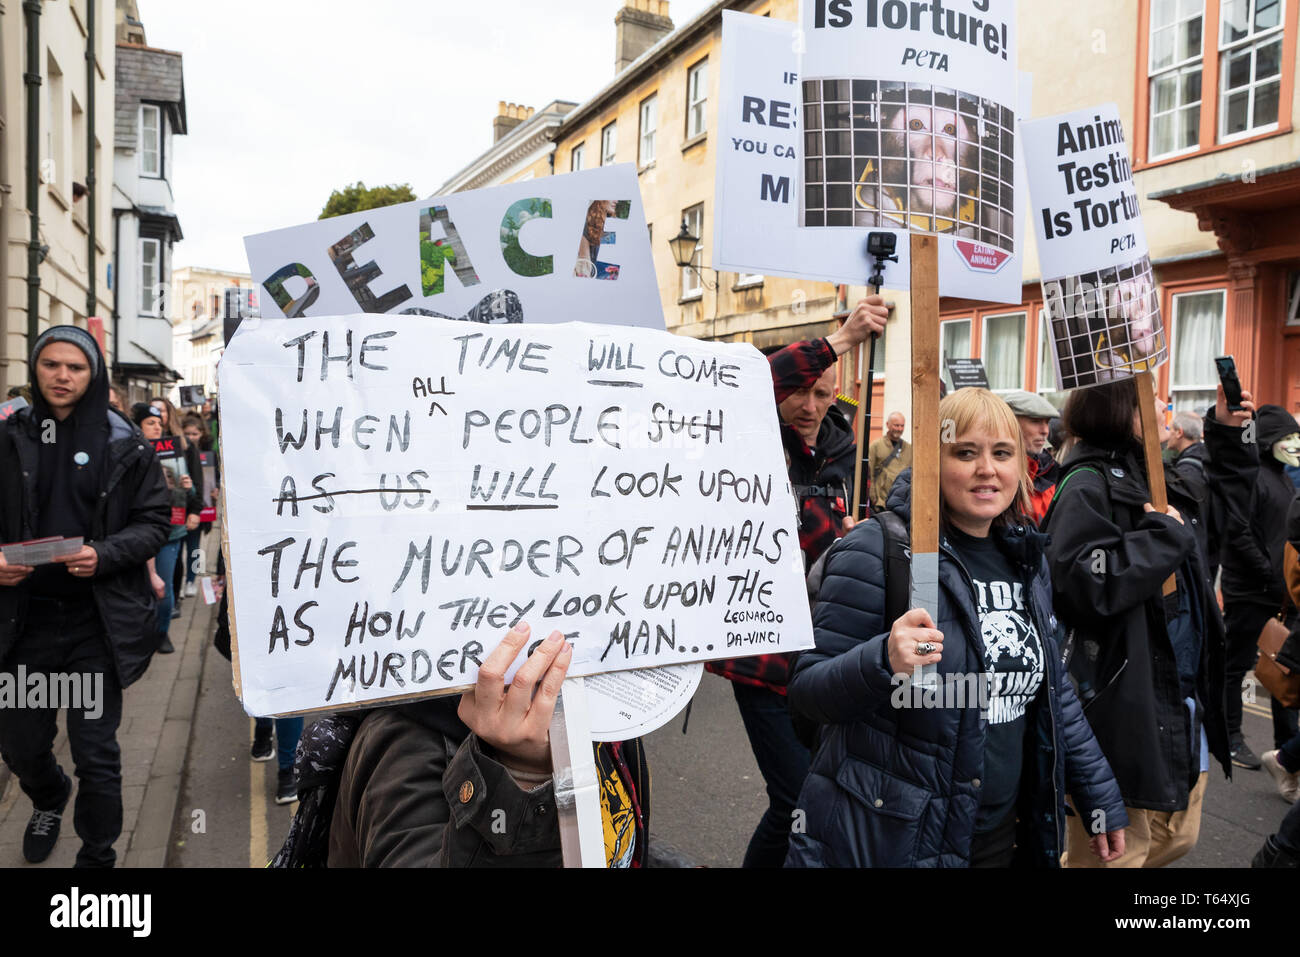 World Day for Animals in Laboratories, Oxford. Activists against animal experiments march through the city centre to highlight their campaign. - Stock Image